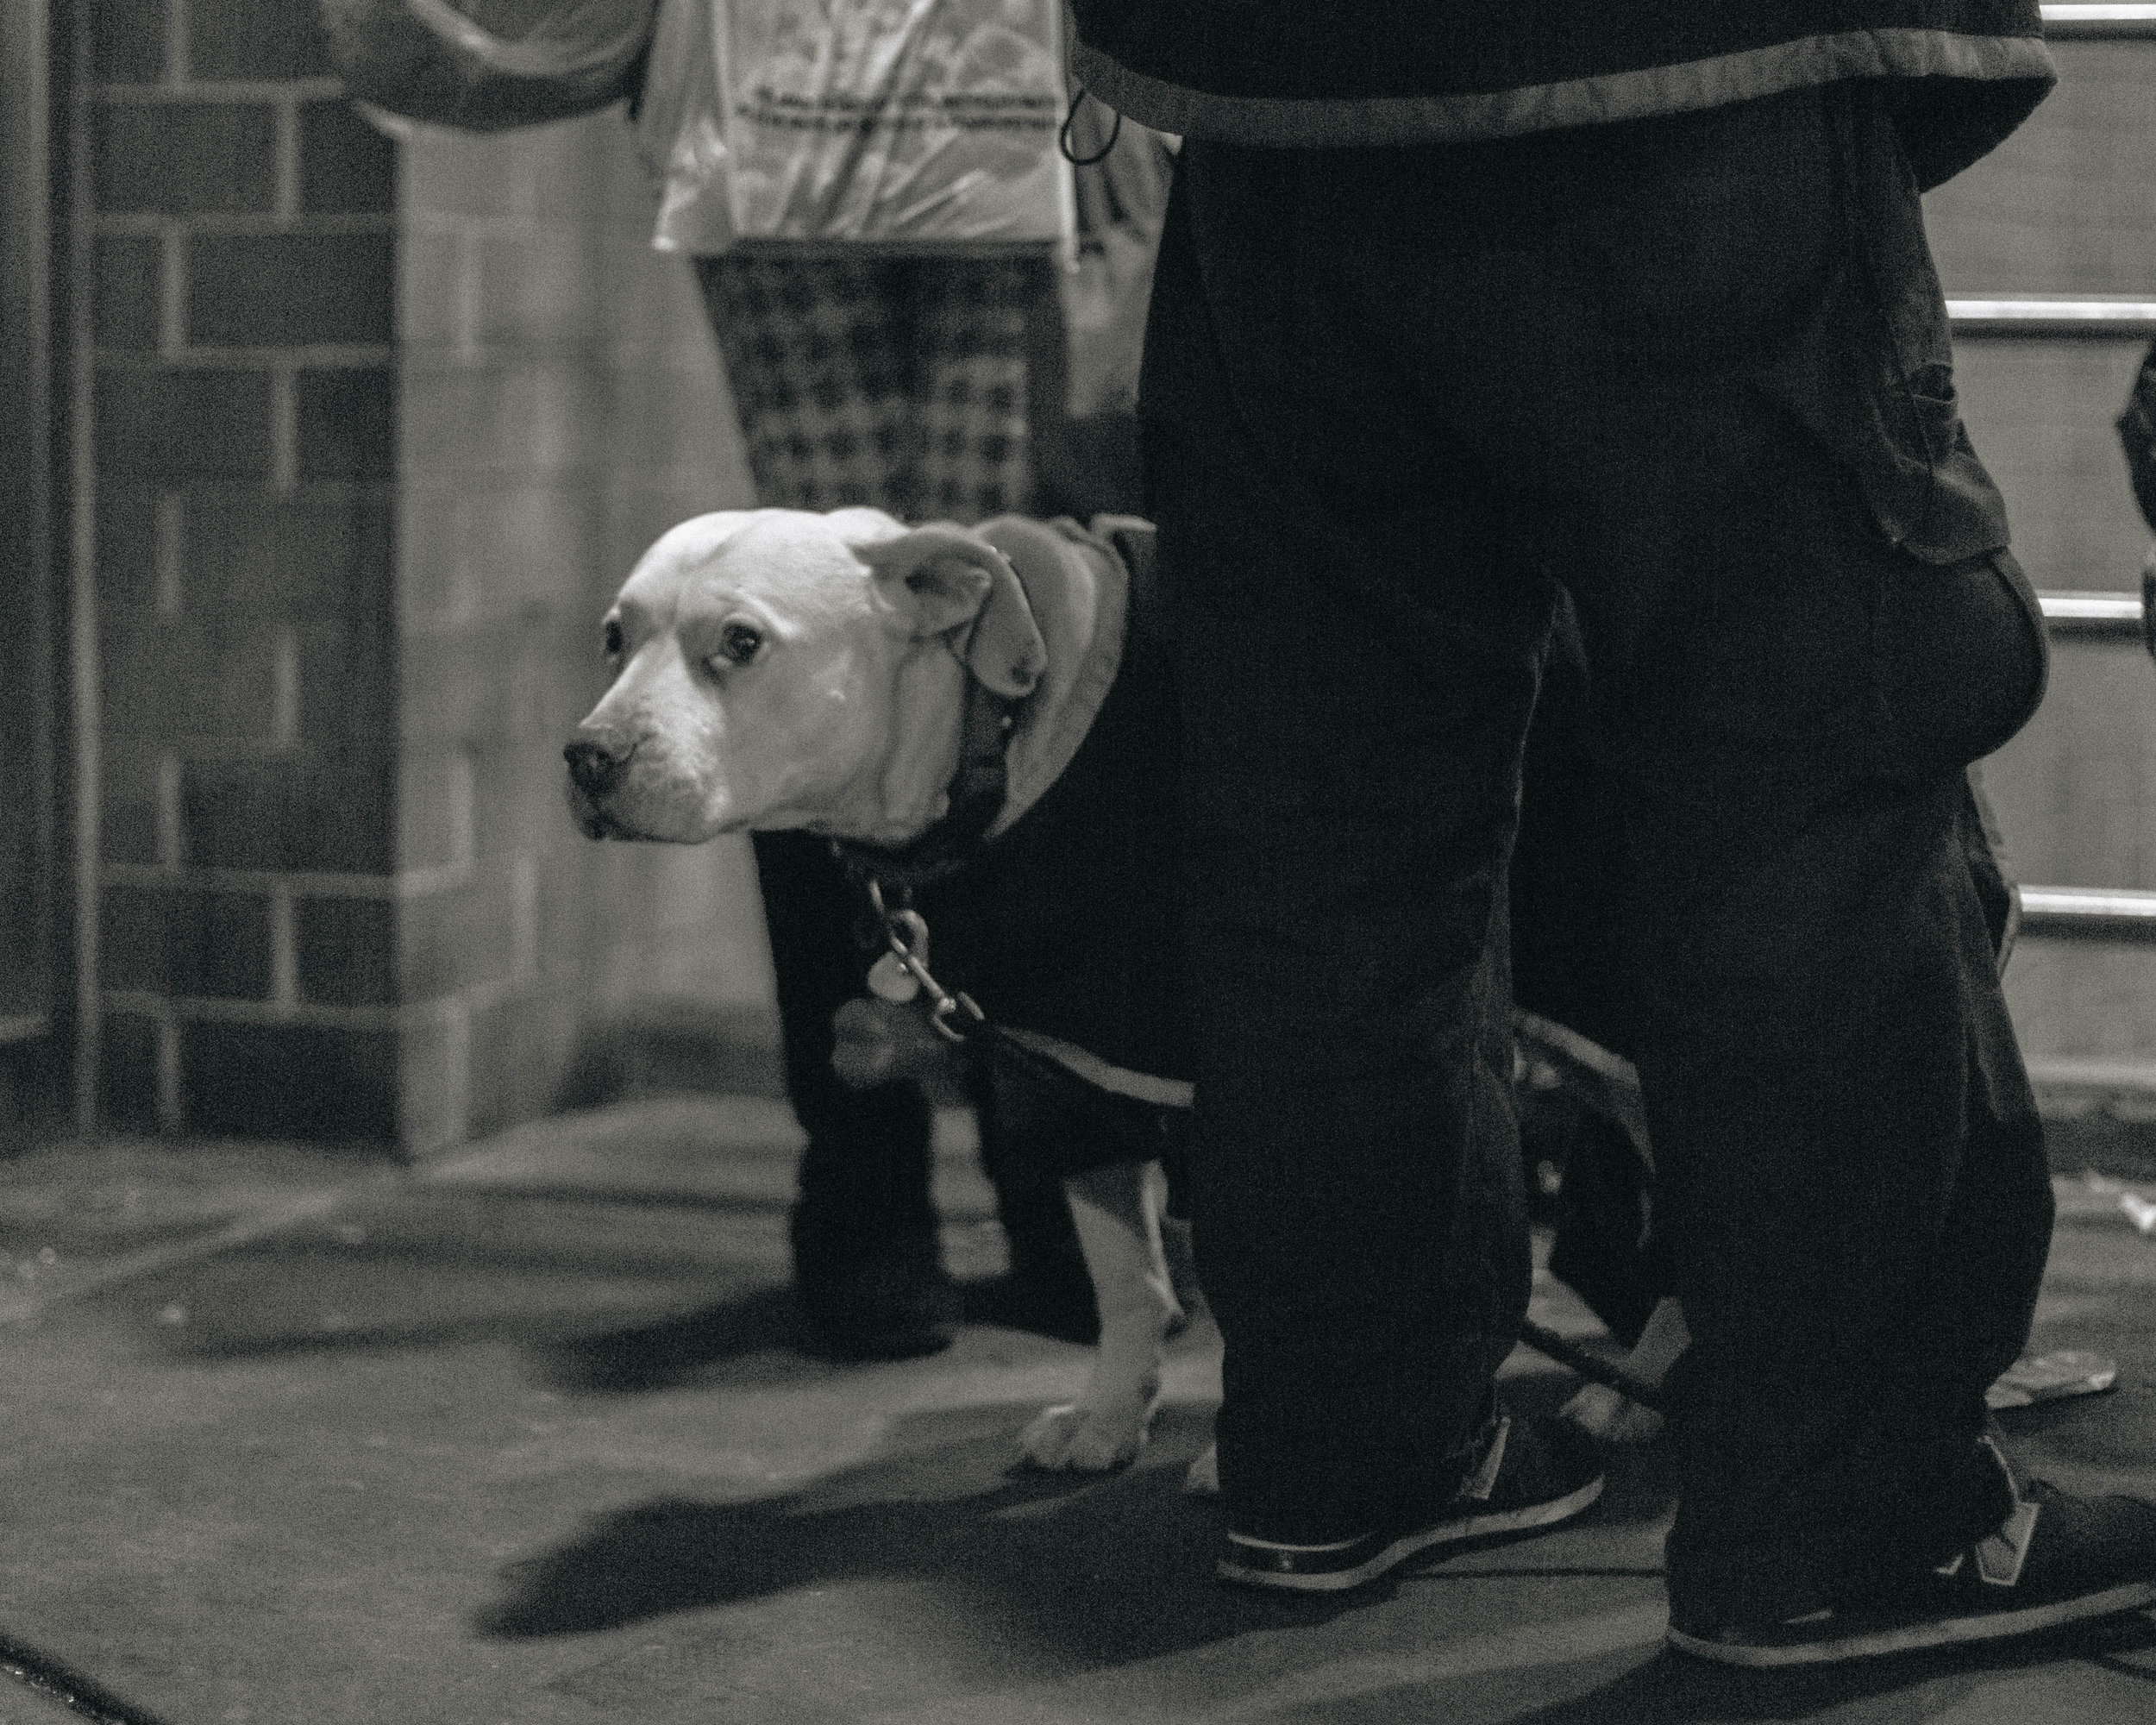 Union Square, NYC. Dogs are often companions for the homeless. Despite the number of homeless who own dogs, shelters do not accept people who own dogs, making the process of getting housing from a shelter even more complicated. A handful of hospitals accept animals.